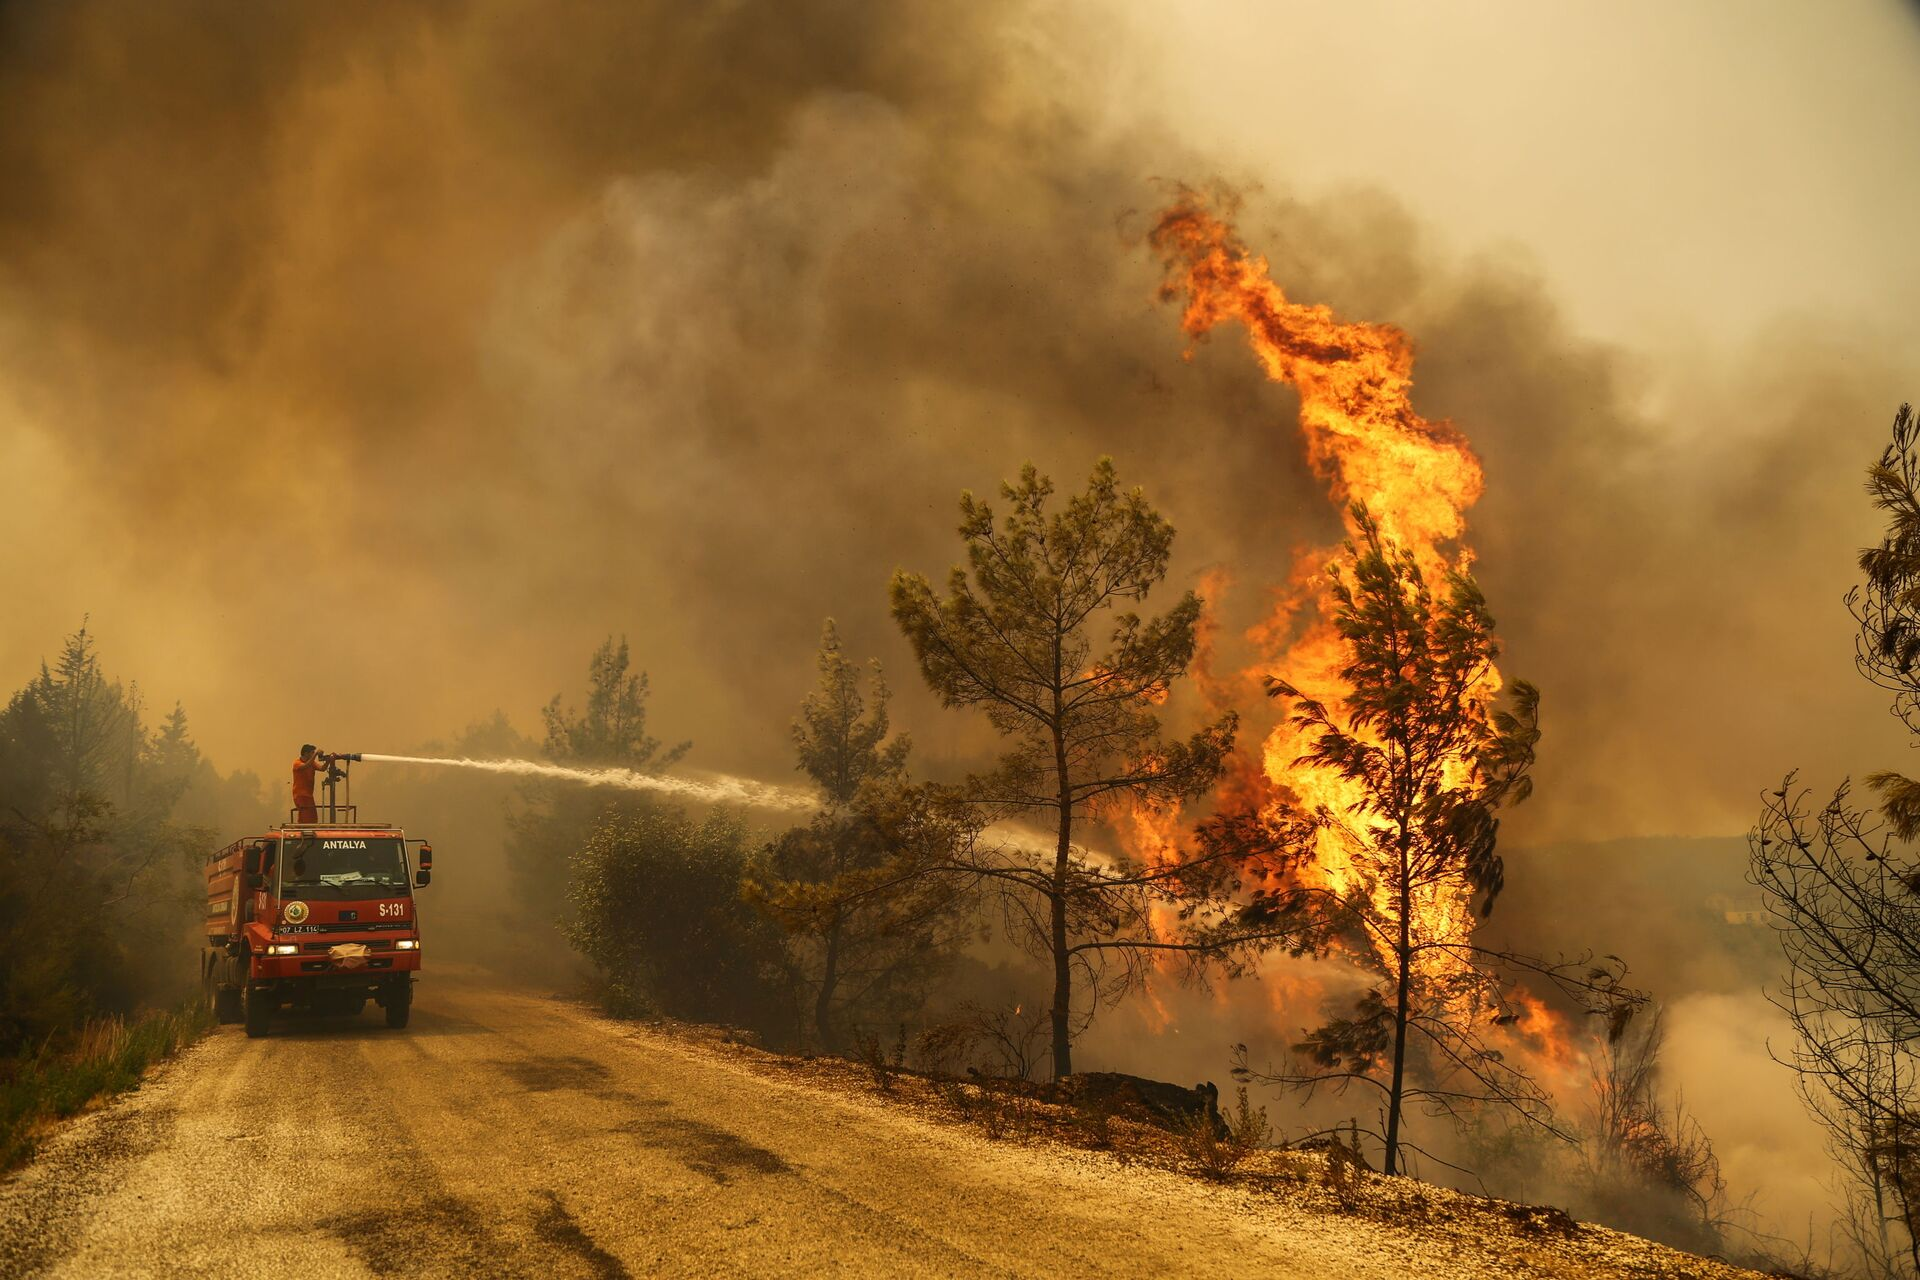 A firefighter extinguishes a forest fire near the town of Manavgat, east of the resort city of Antalya, Turkey, July 30, 2021. REUTERS/Kaan Soyturk - Sputnik International, 1920, 07.09.2021